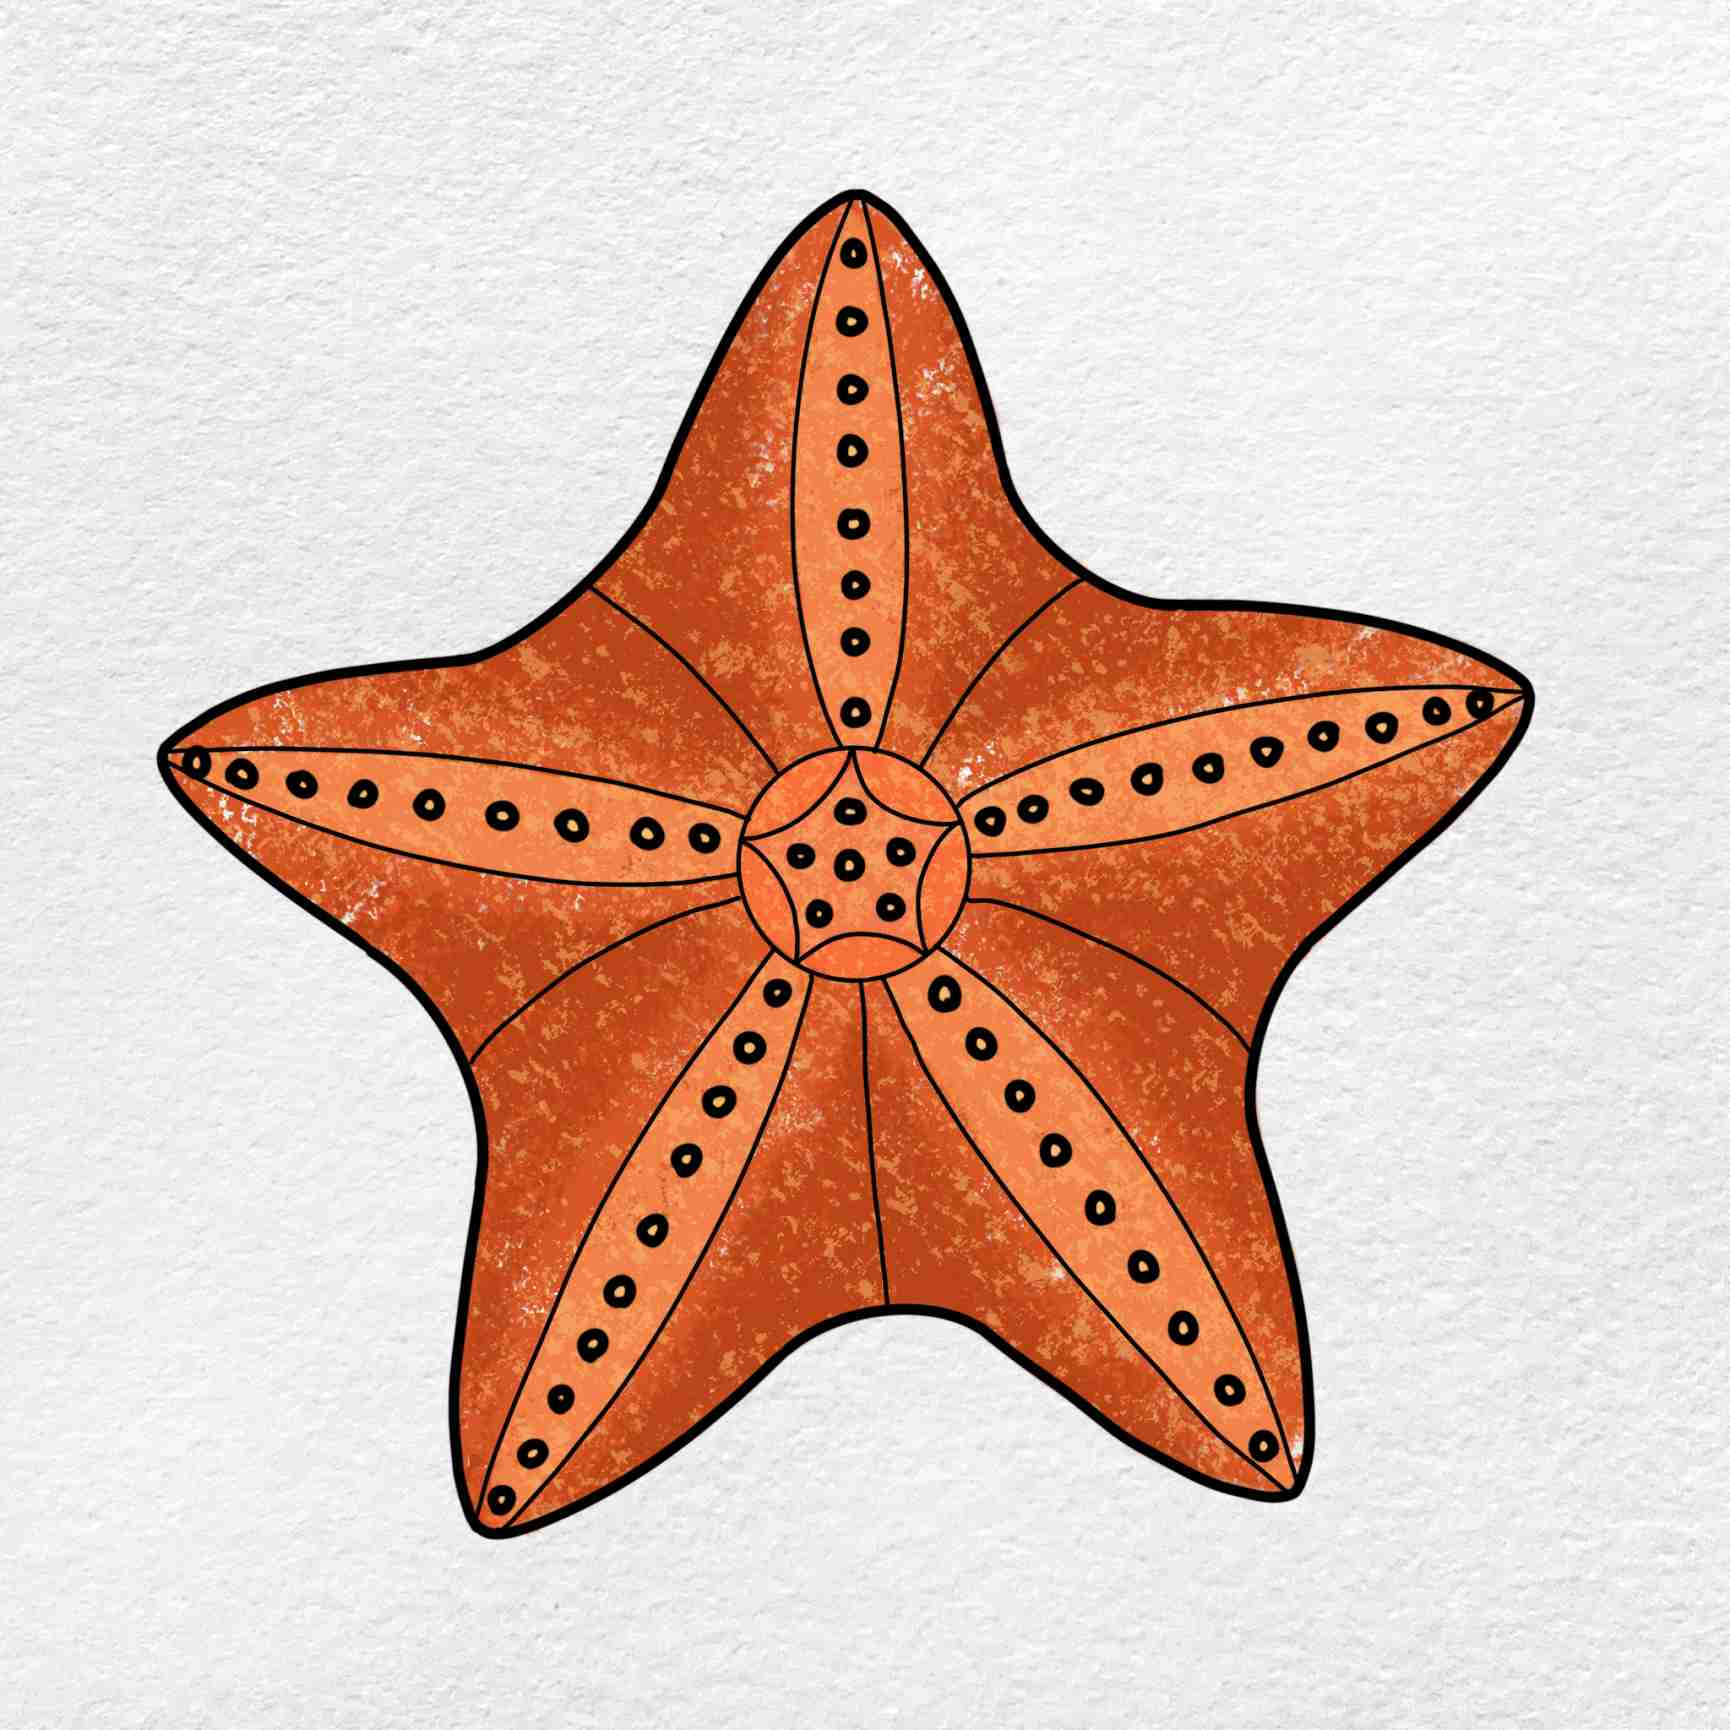 How To Draw A Starfish: Step 6